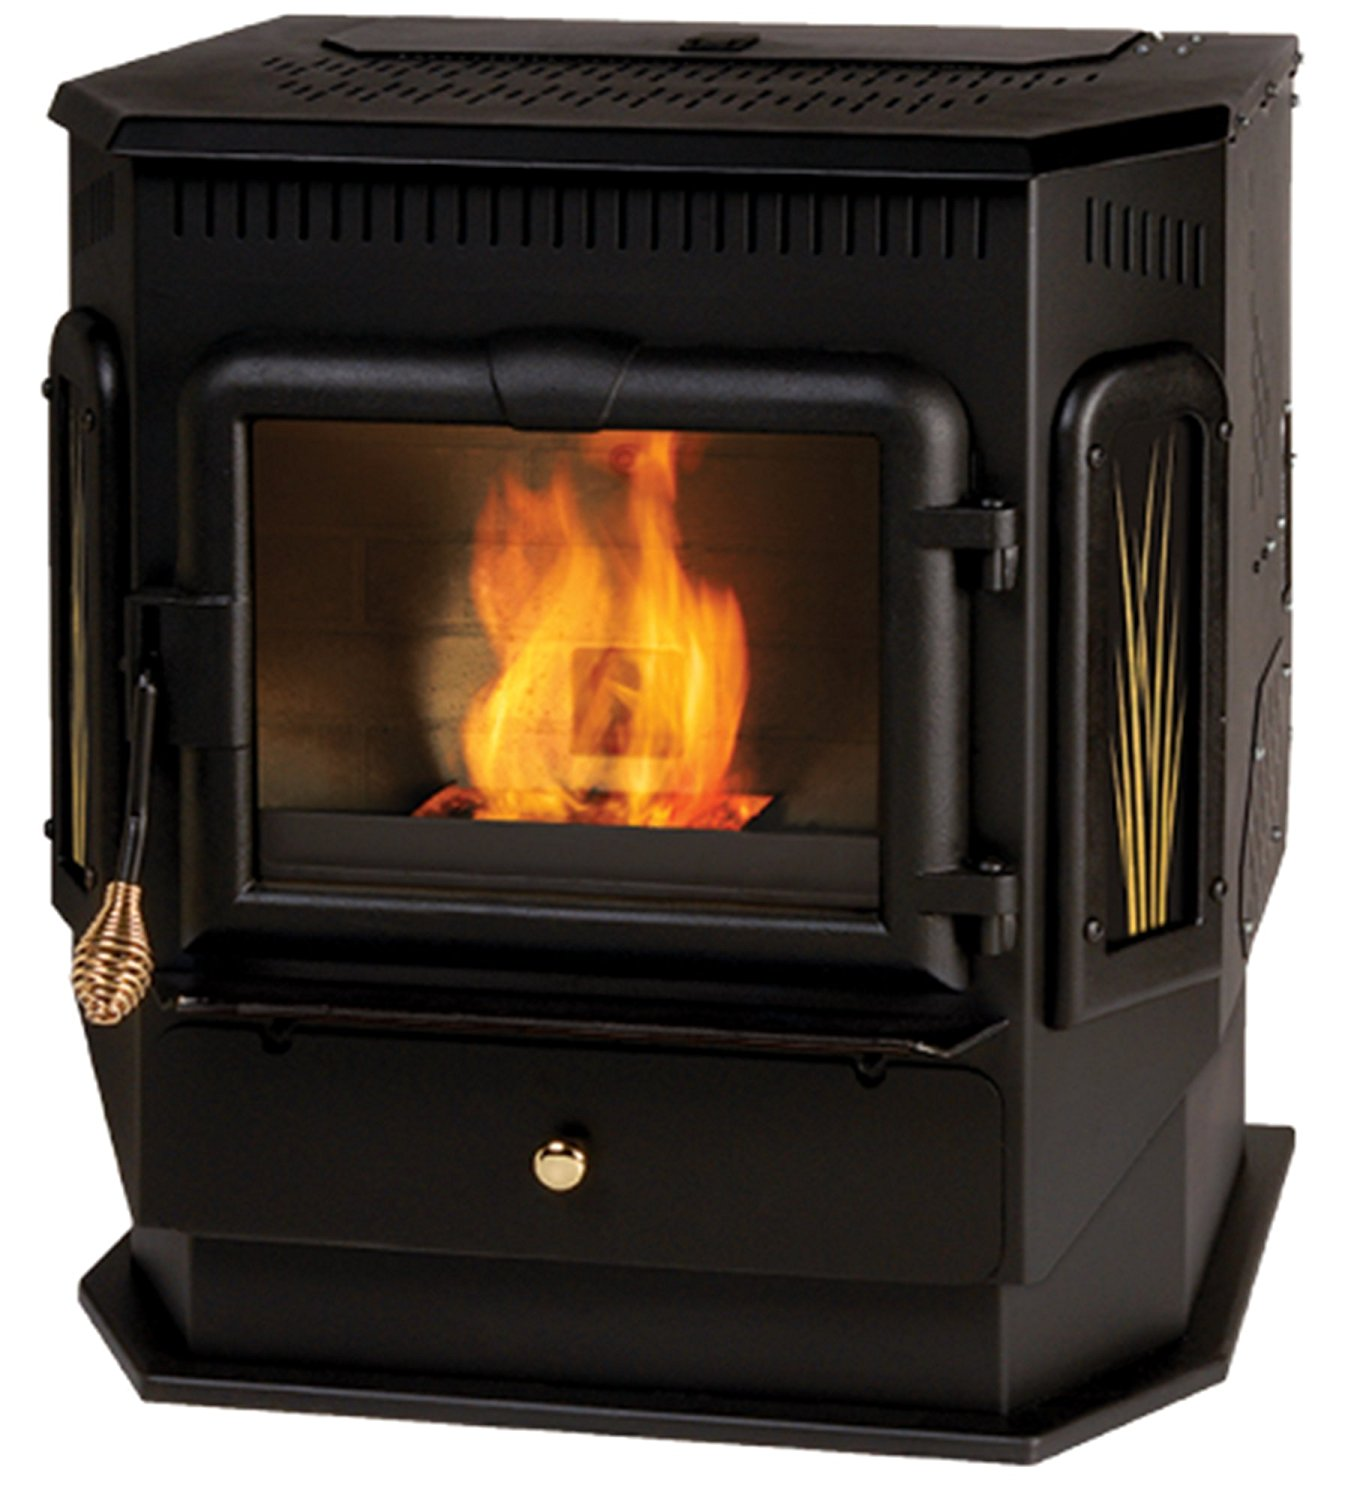 Summers Heat 49-SHCPM Pellet - Multi-Fuel Stove 2,200 Square Foot